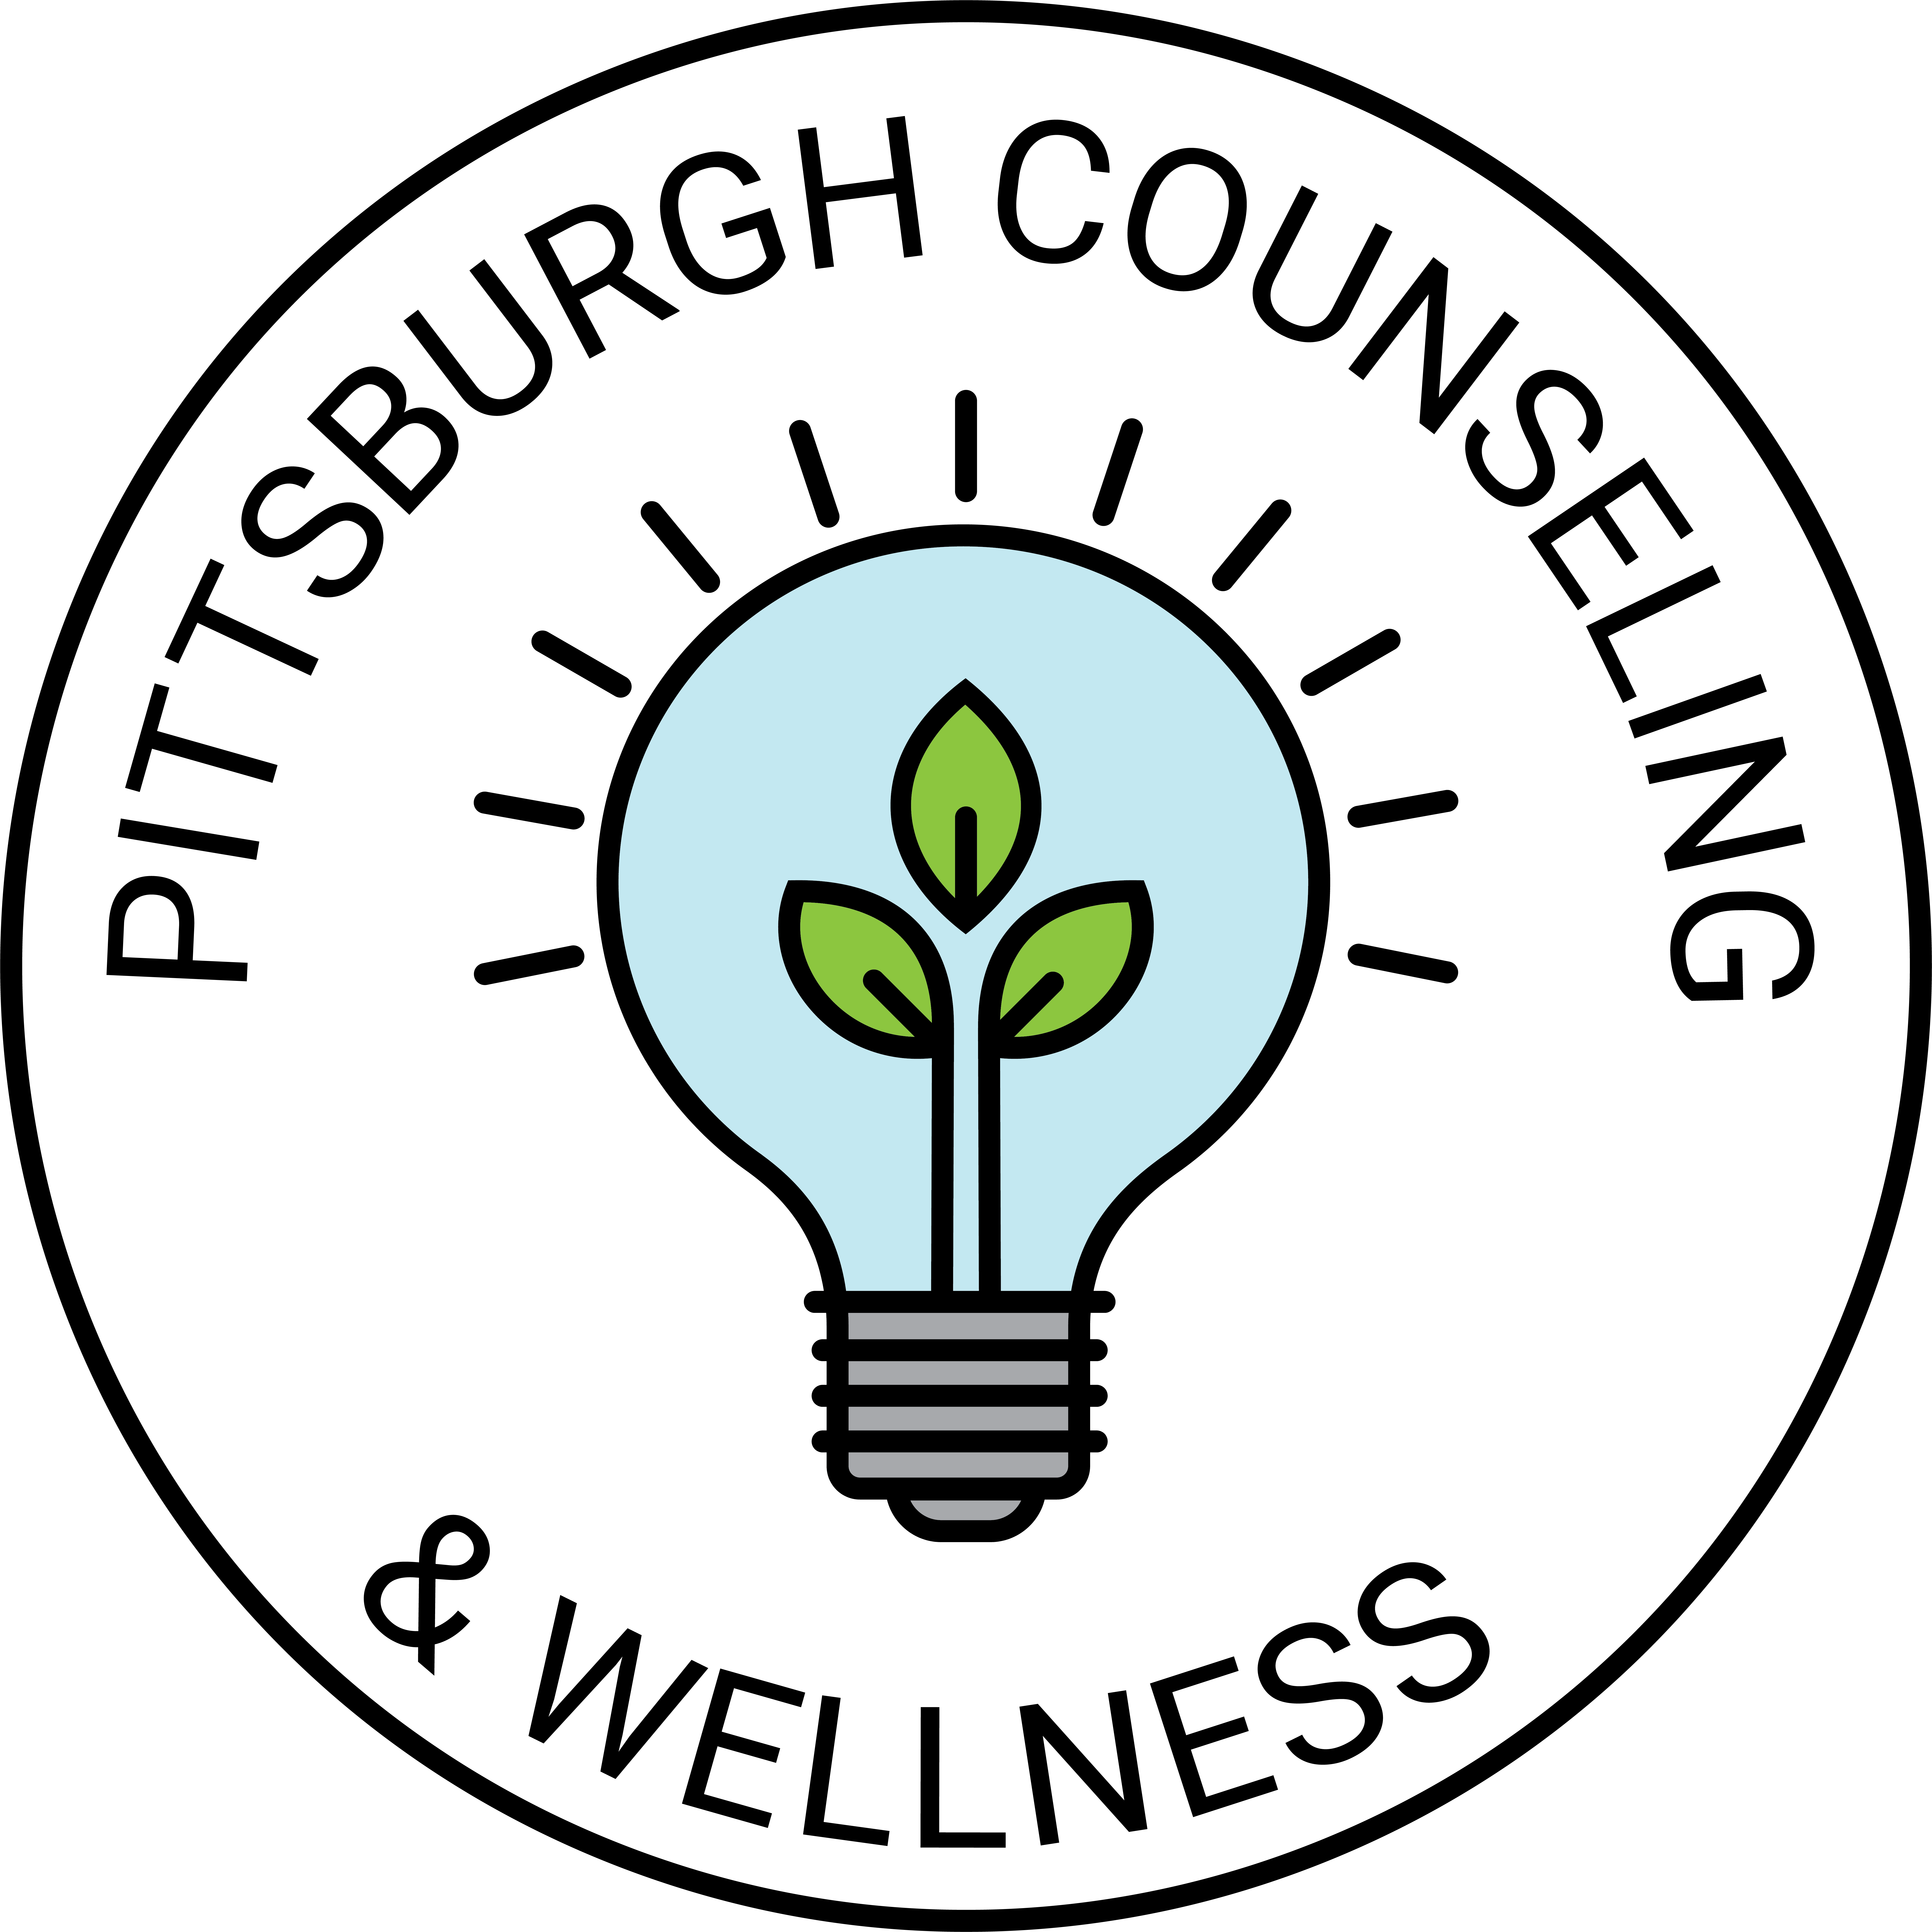 Pittsburgh Counseling & Wellness